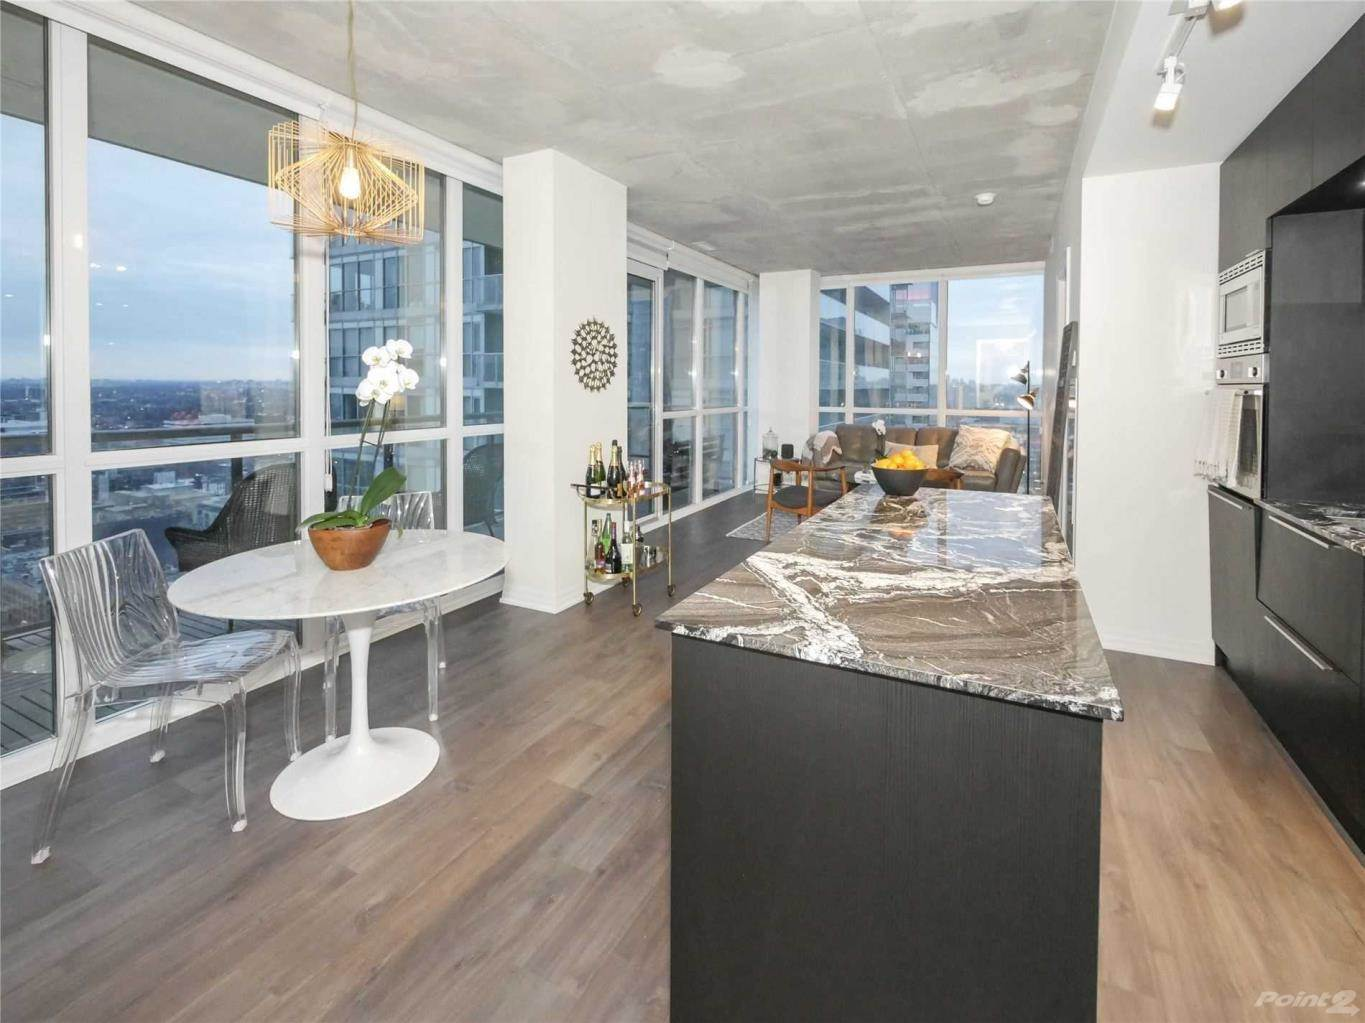 Residential For Sale in 88 Blue Jays Way Toronto ON CA, Toronto, Ontario   , Canada